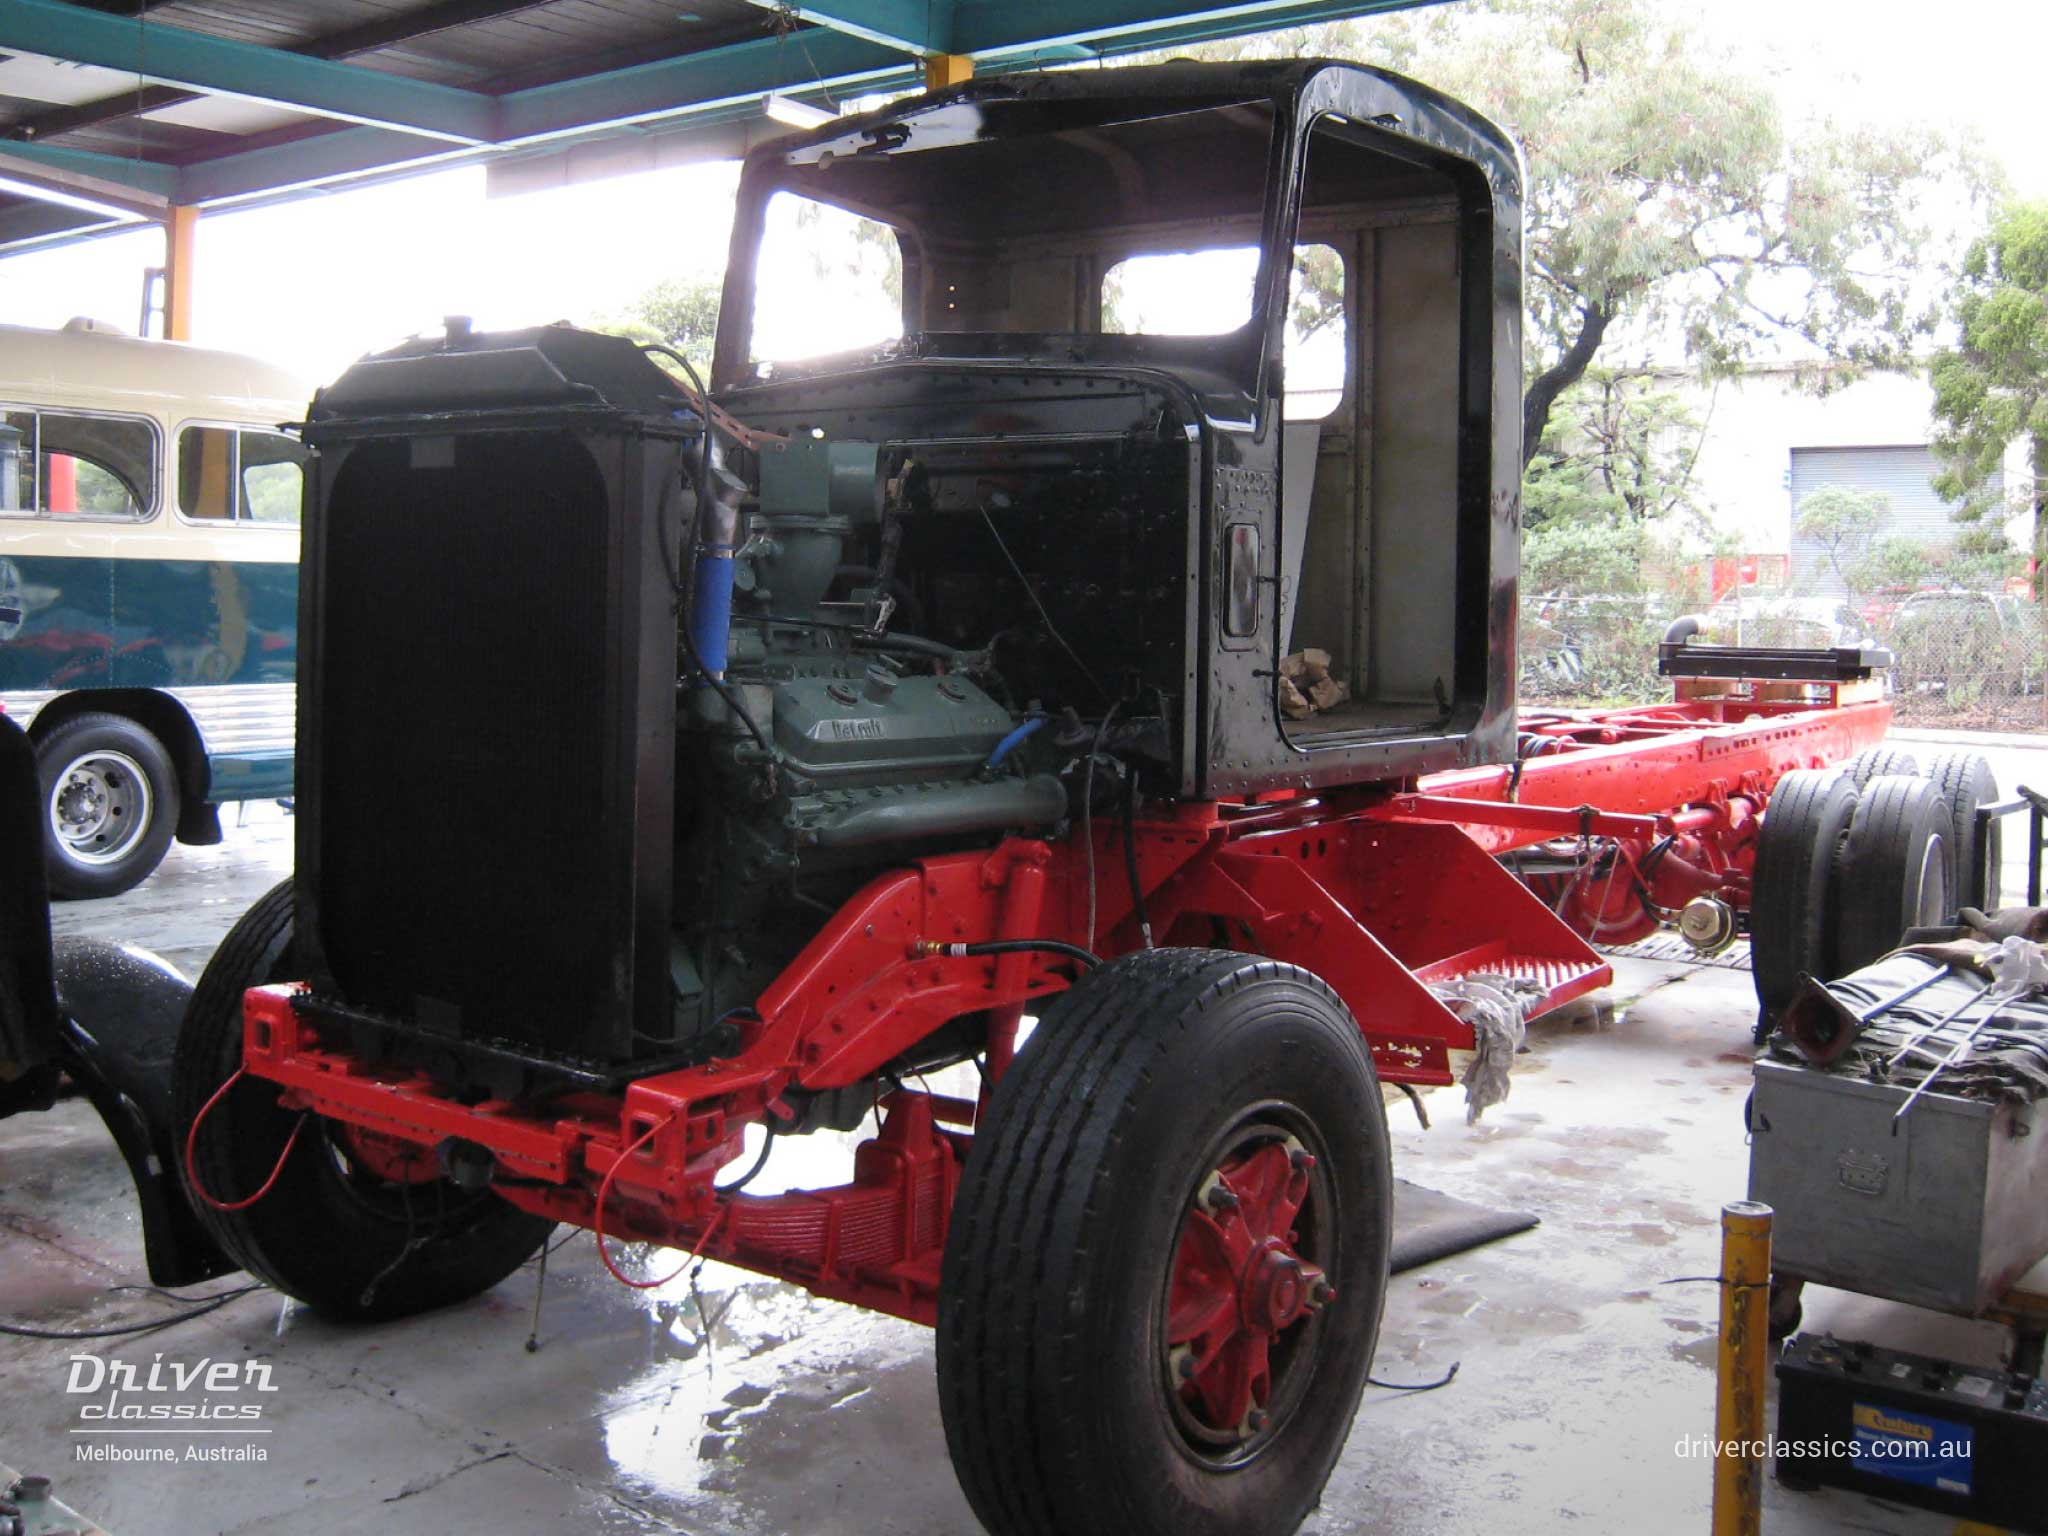 1977 Kenworth W925 truck body assembly during restoration